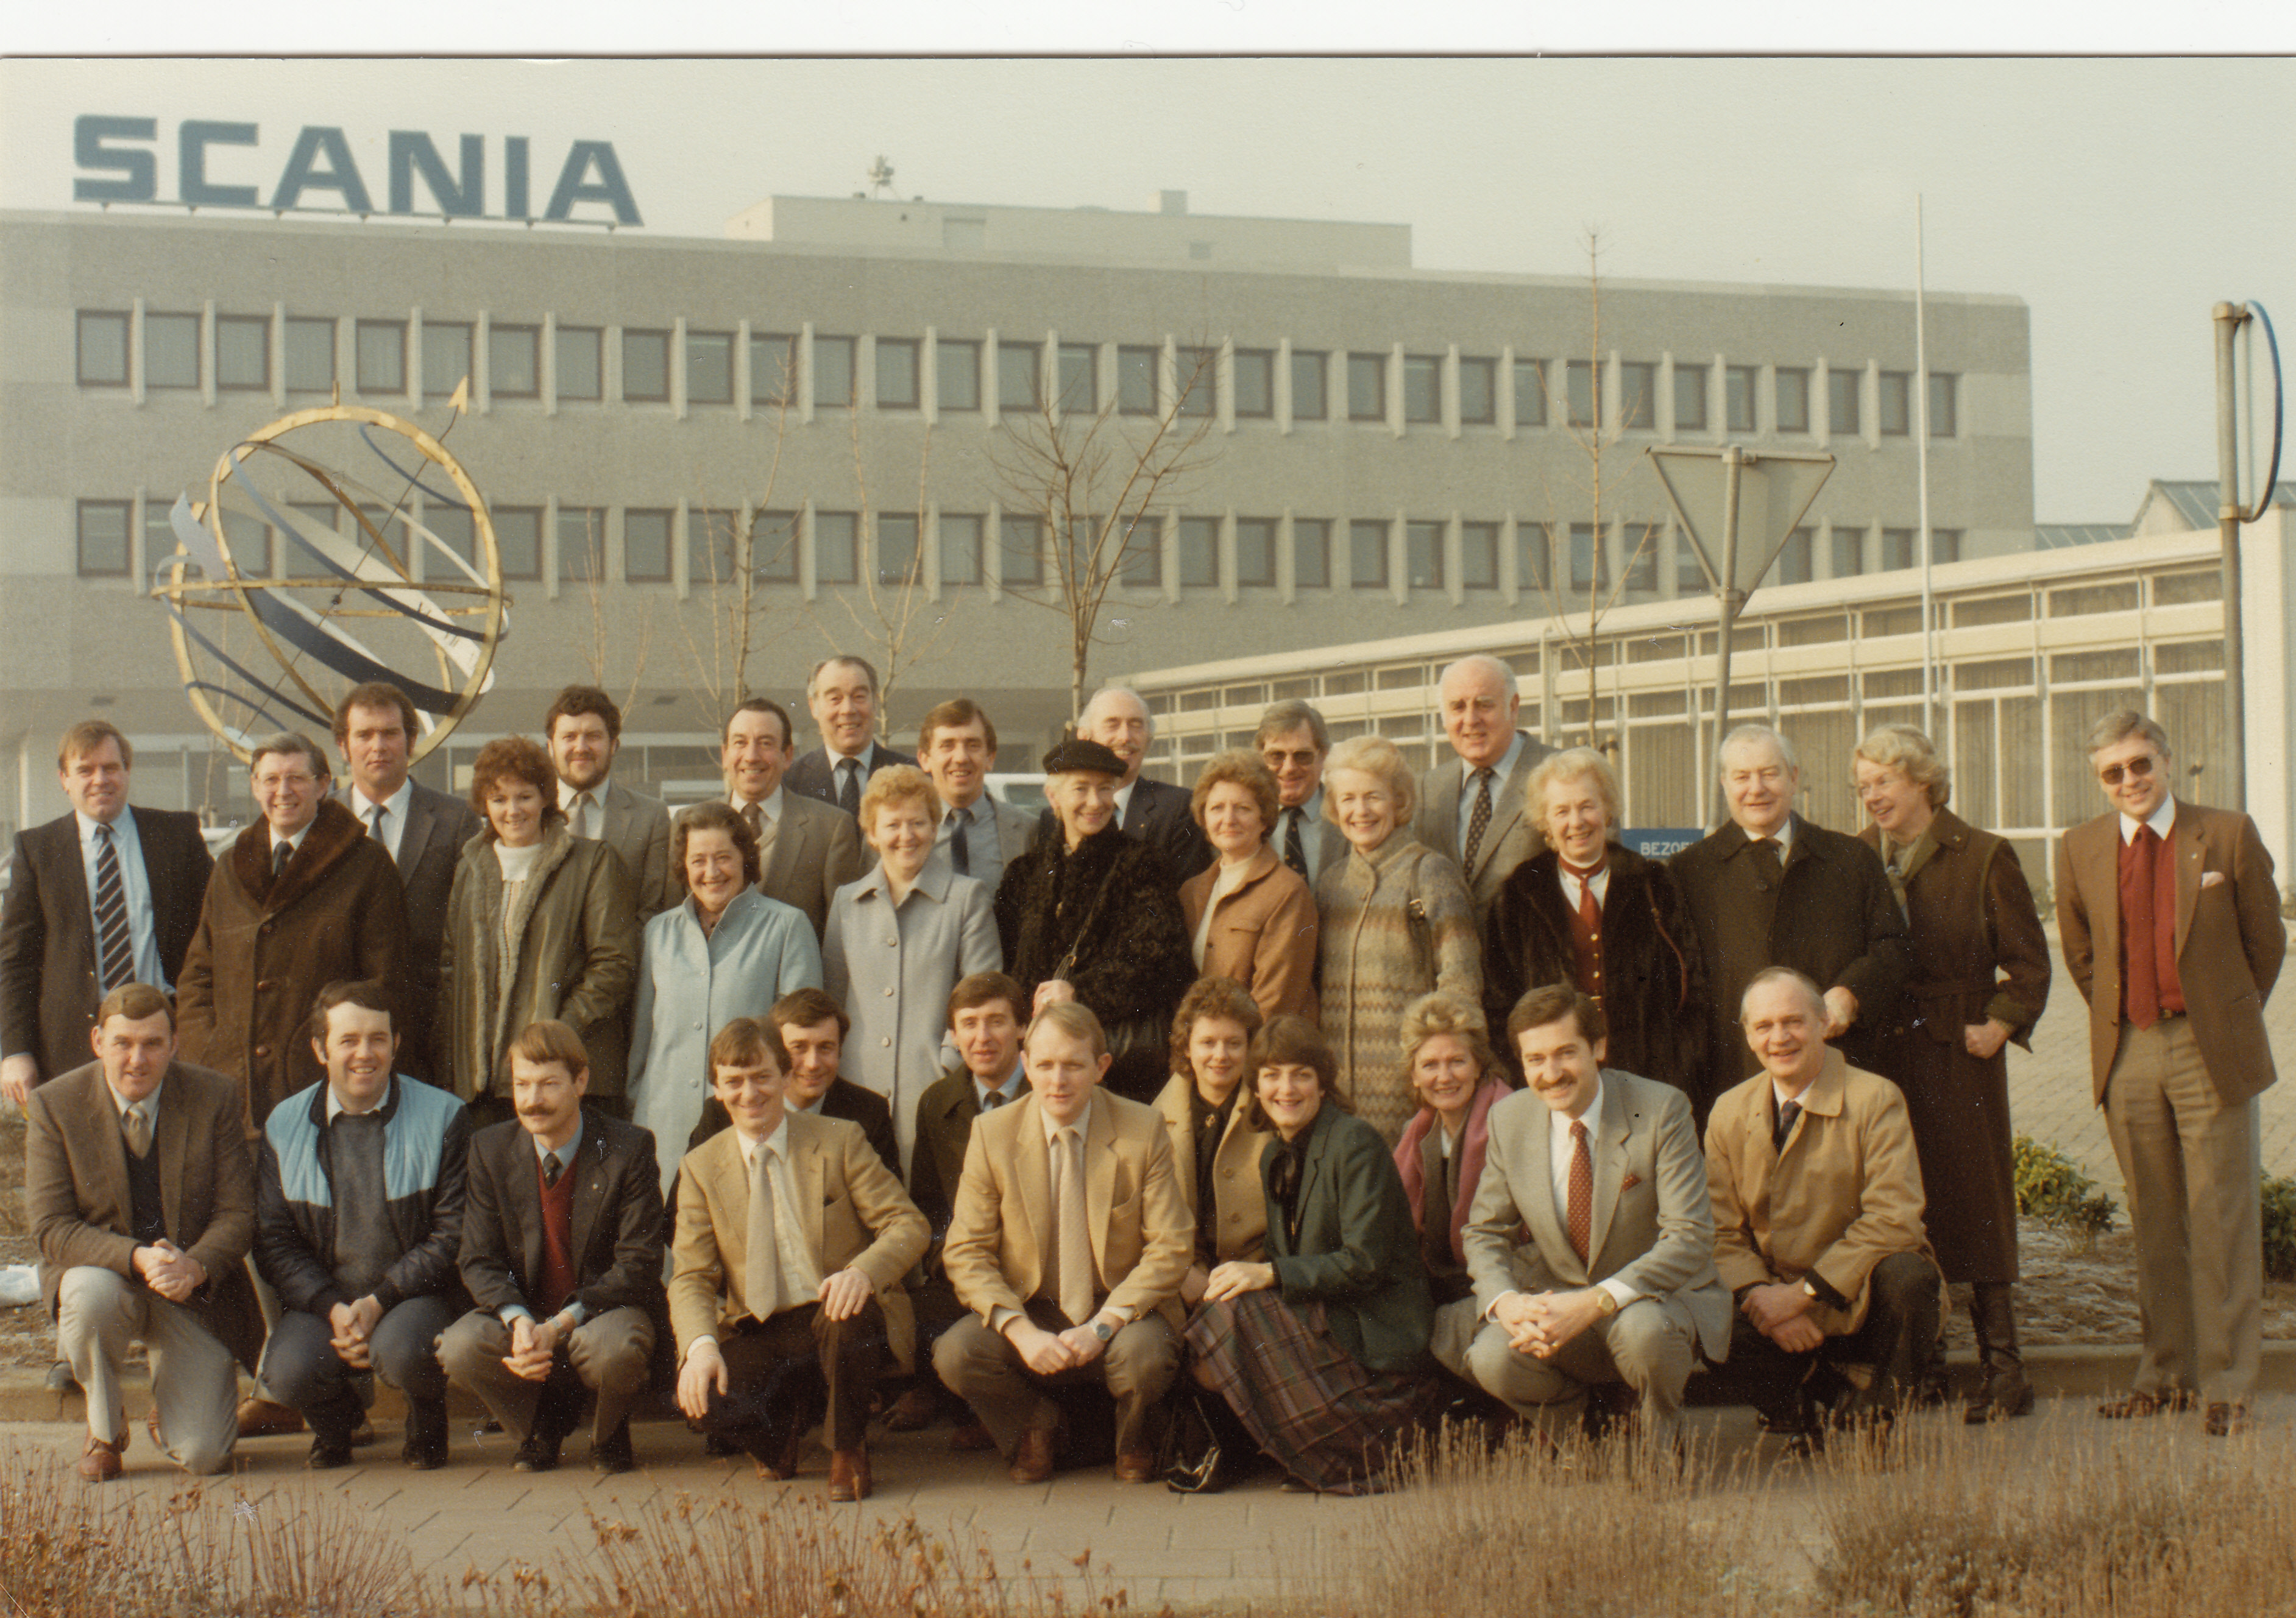 UK Scania Dealer Principals & partners at Scania Group, Zwolle, Netherlands in the early 1980s with Chris Kelly, founder, representing Keltruck.